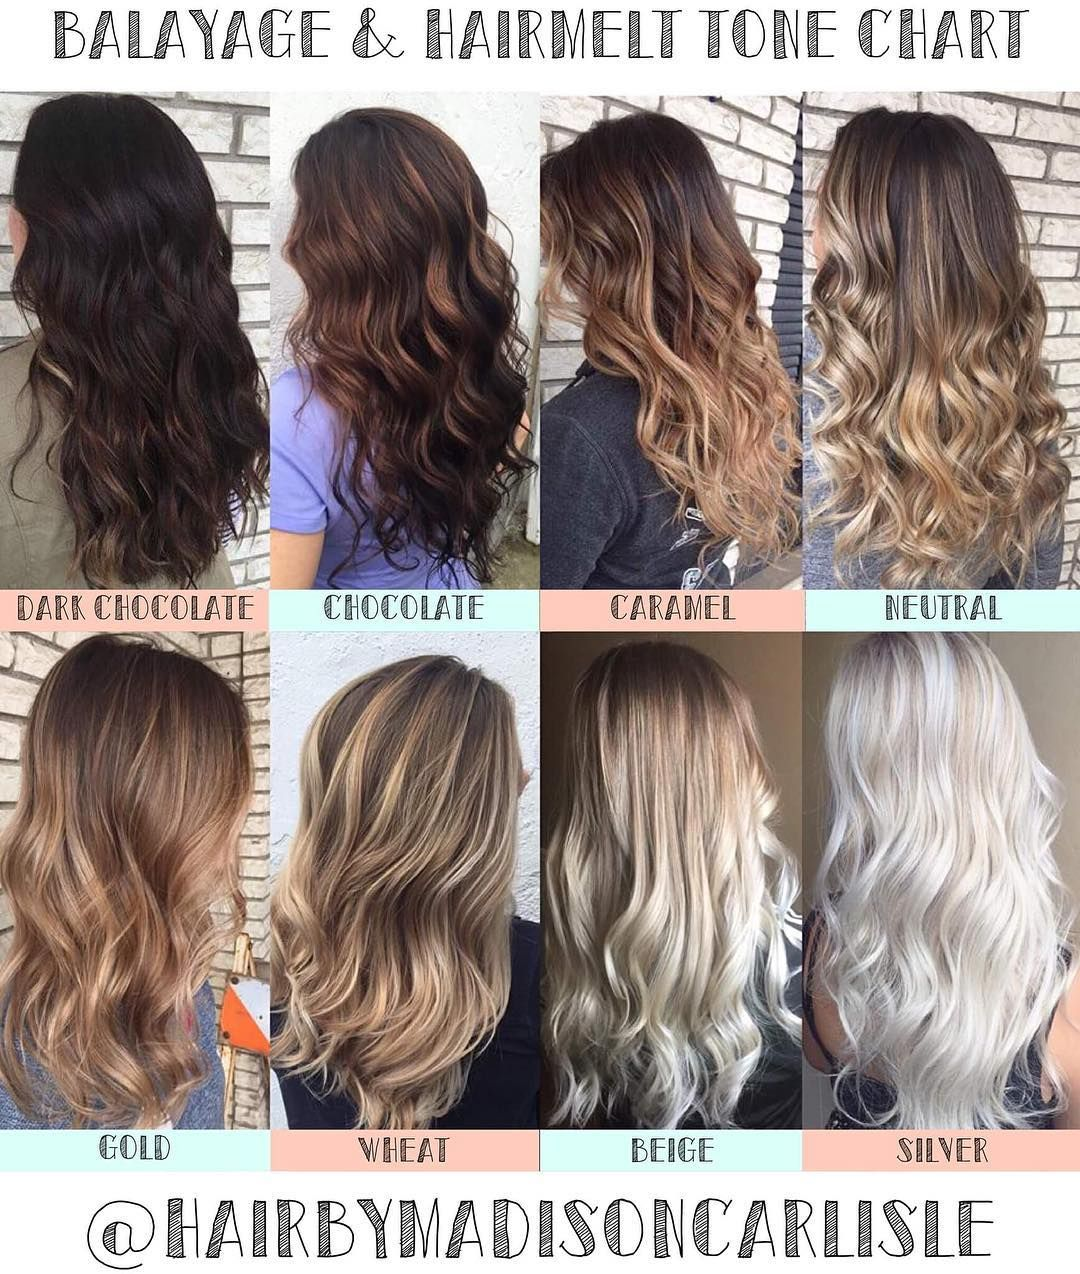 Hair Color Tone Chart Balayage \u0026 Color Specialist